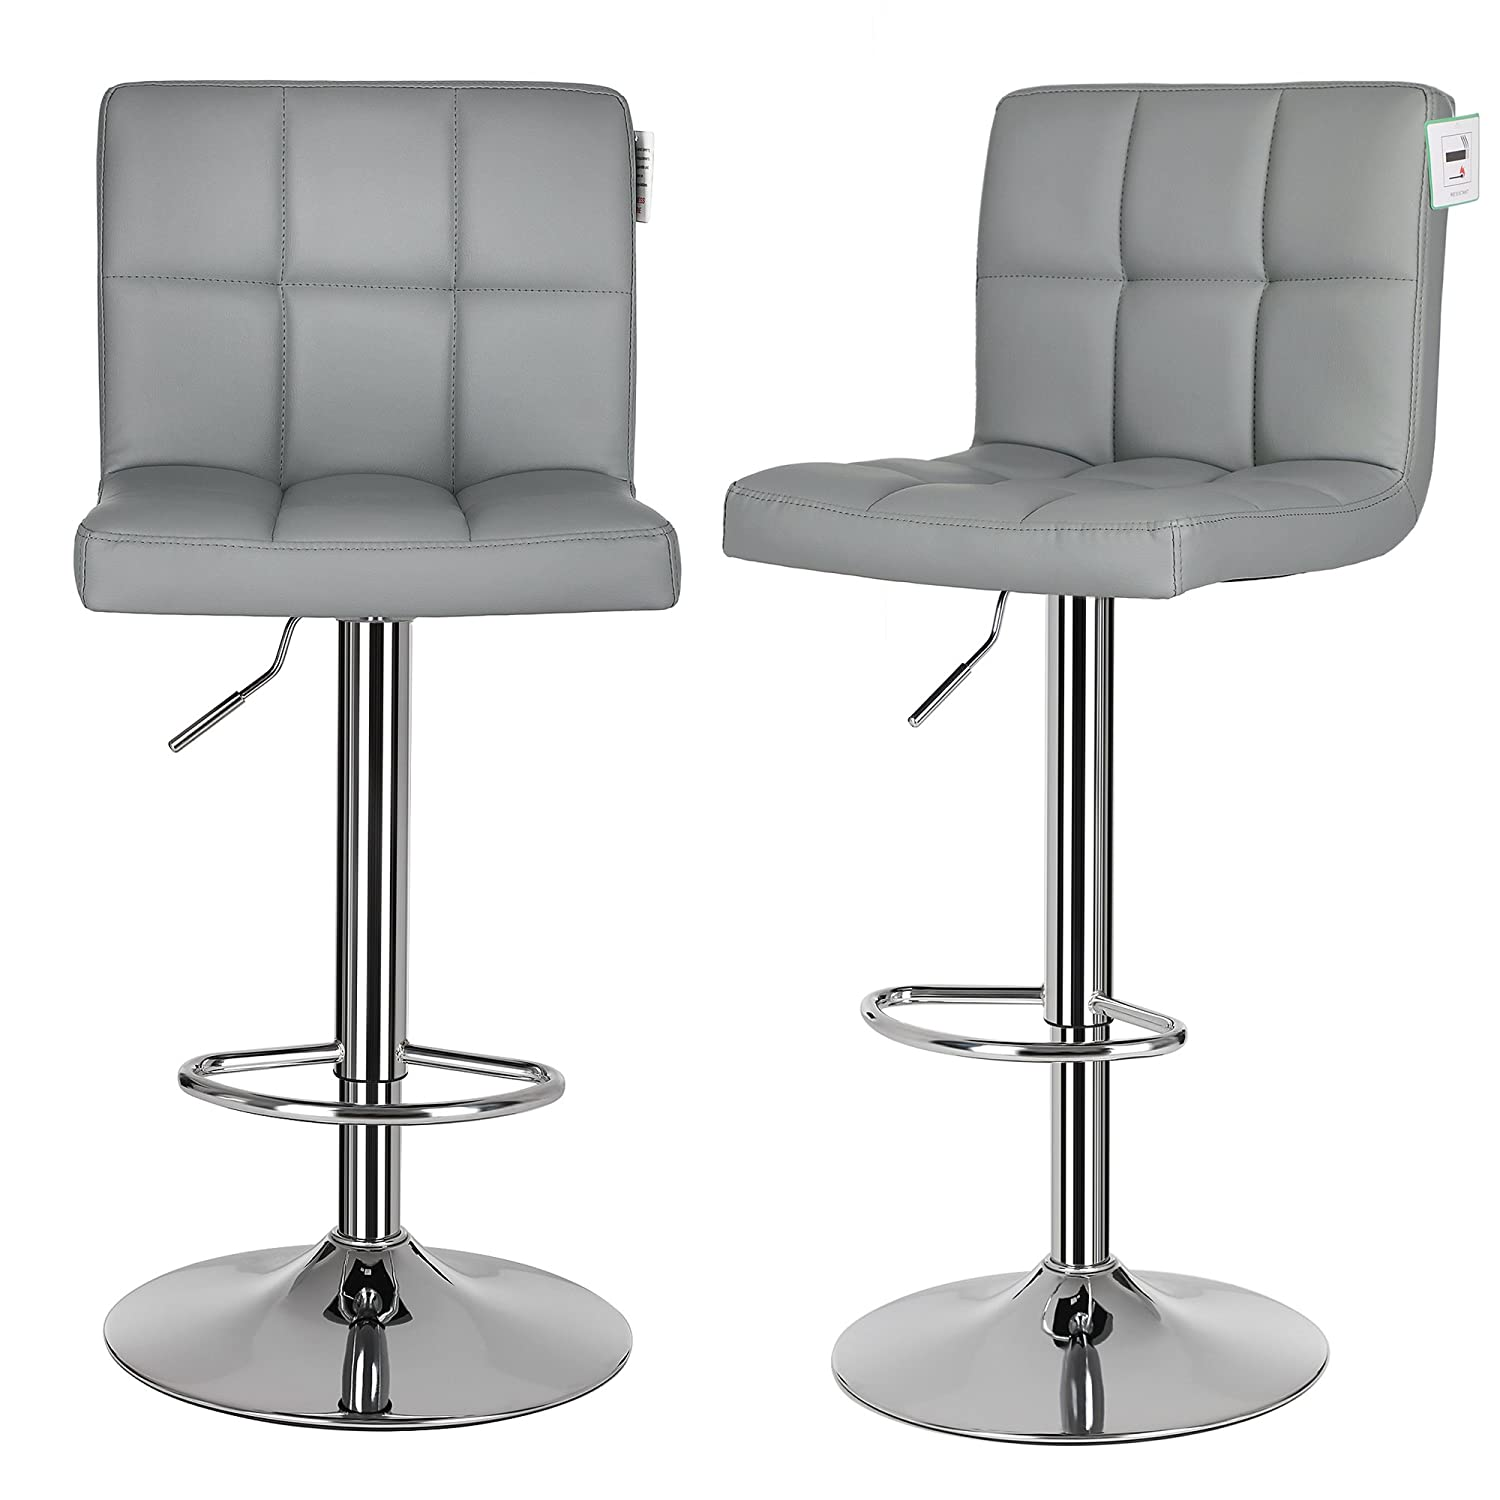 Lovely high bar stool chairs Home bar furniture amazon